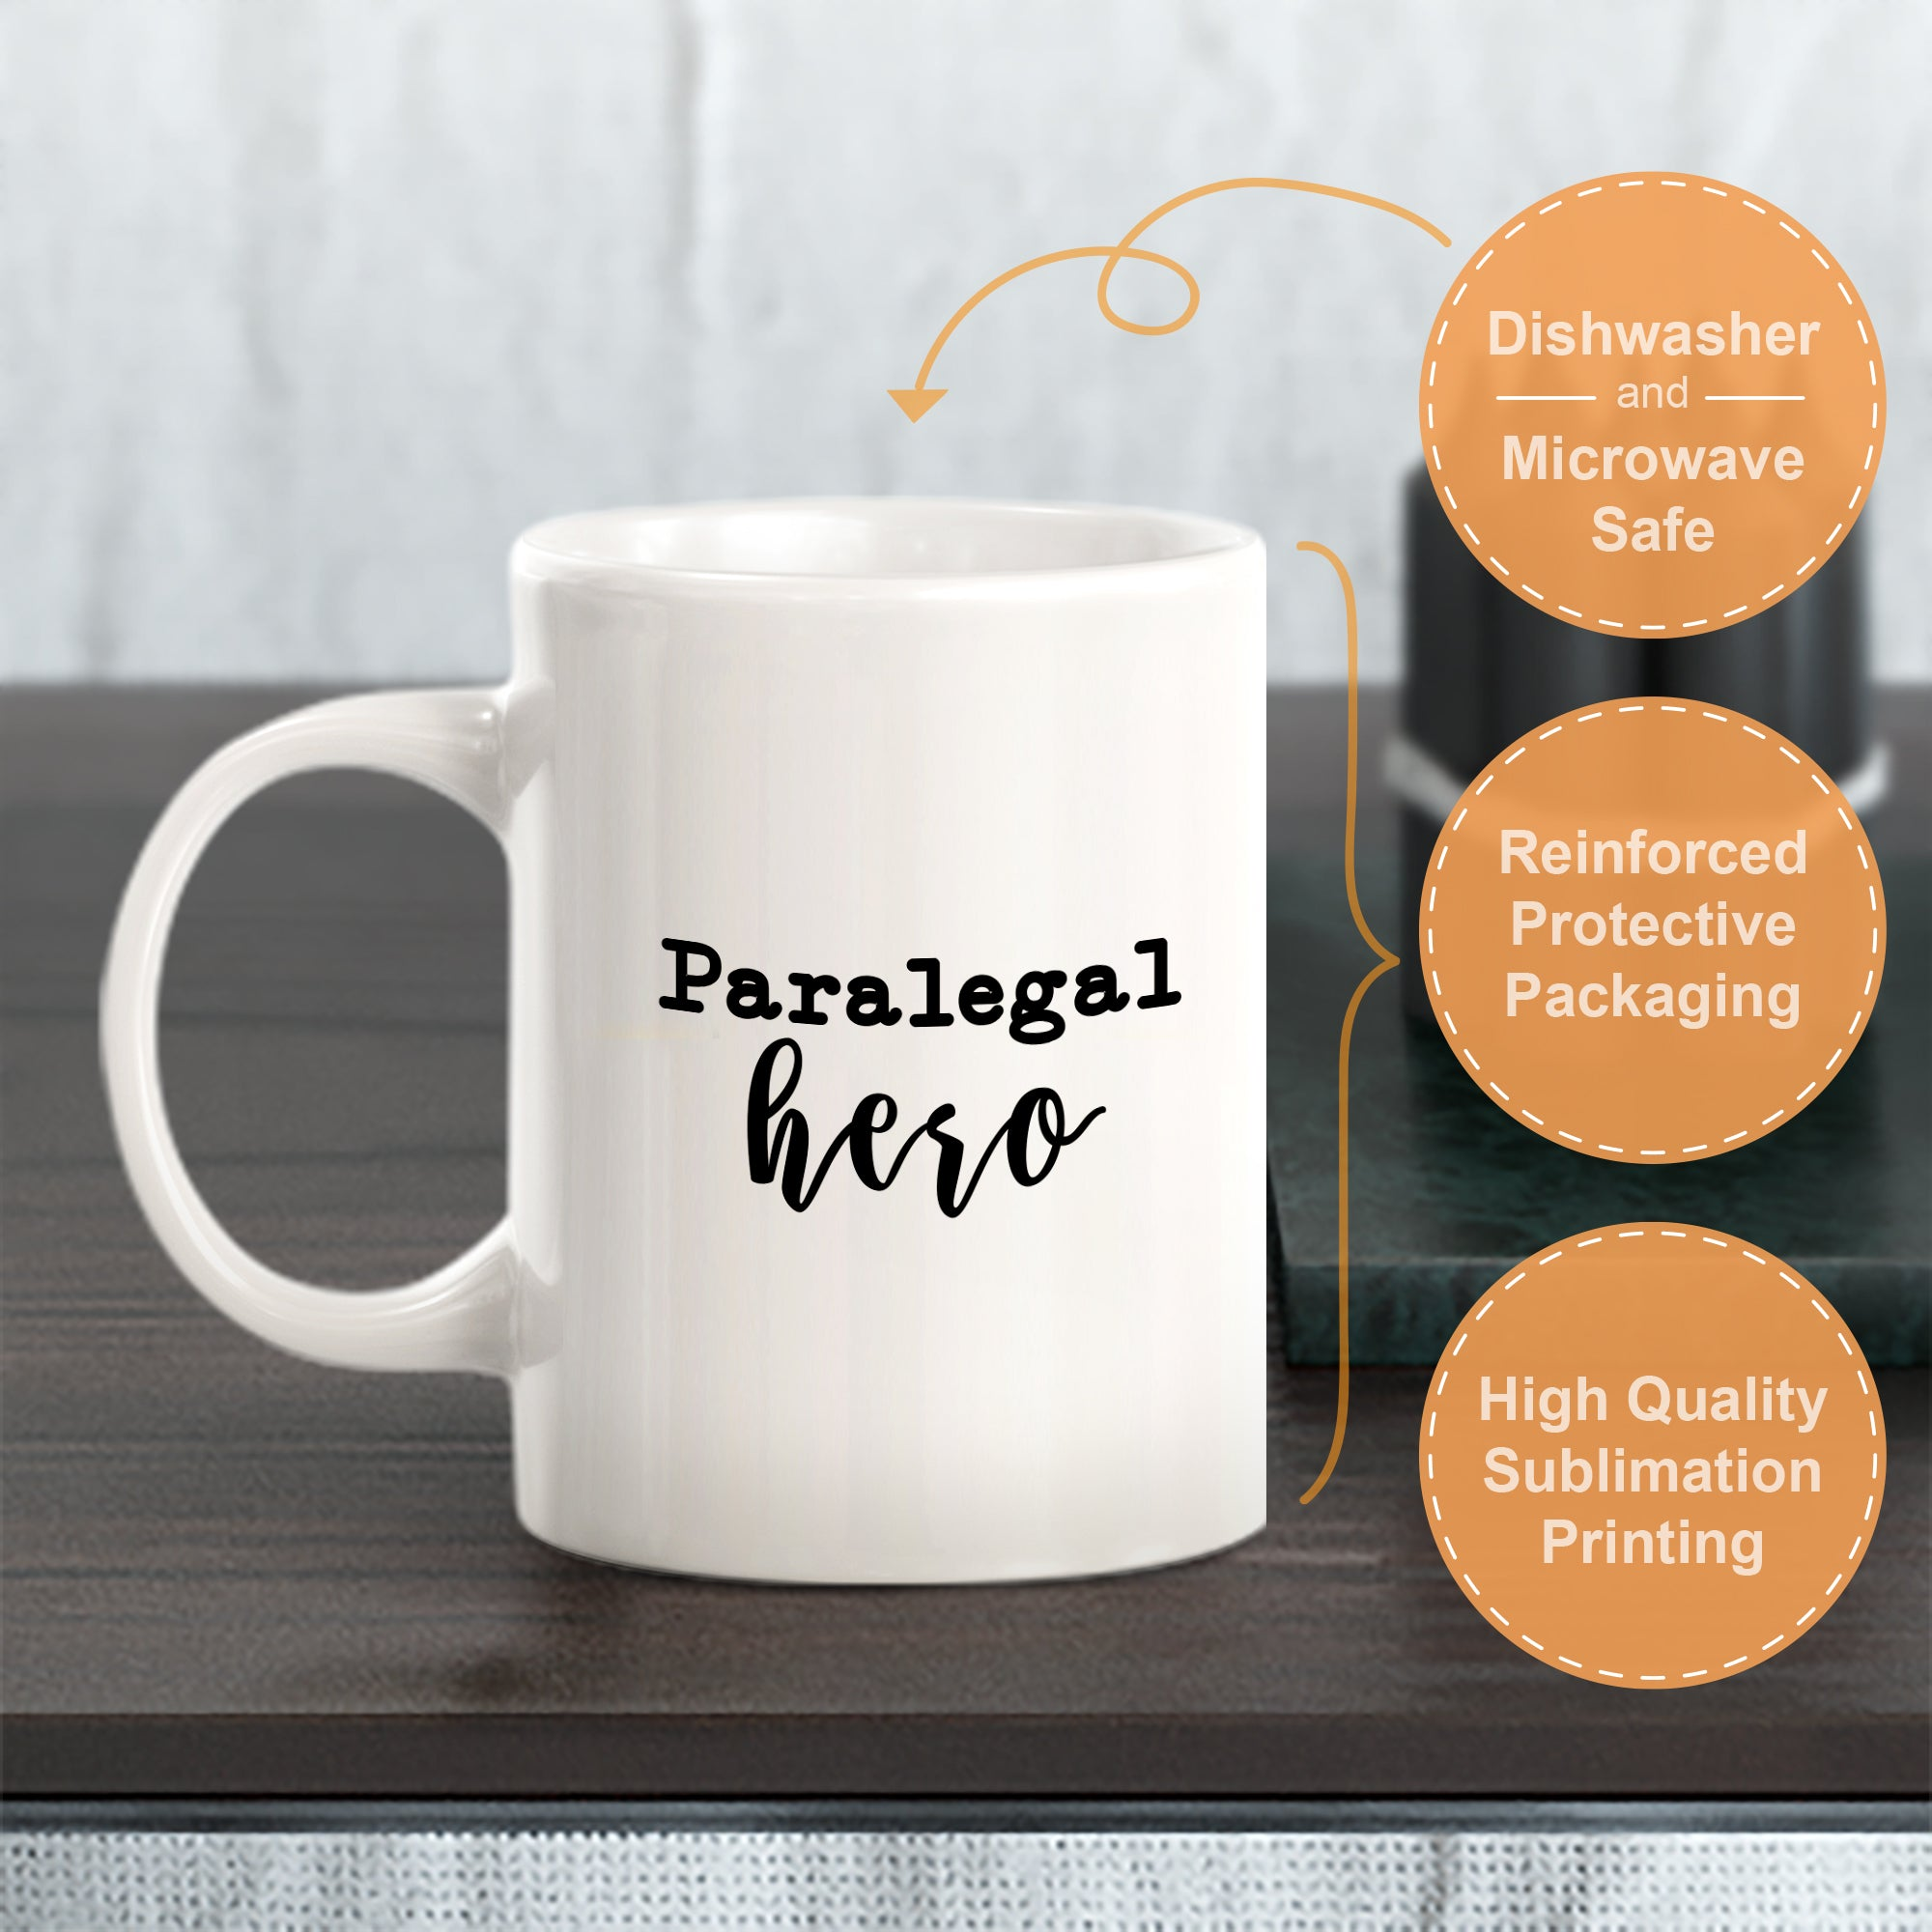 Paralegal Hero Cursive Coffee Mug